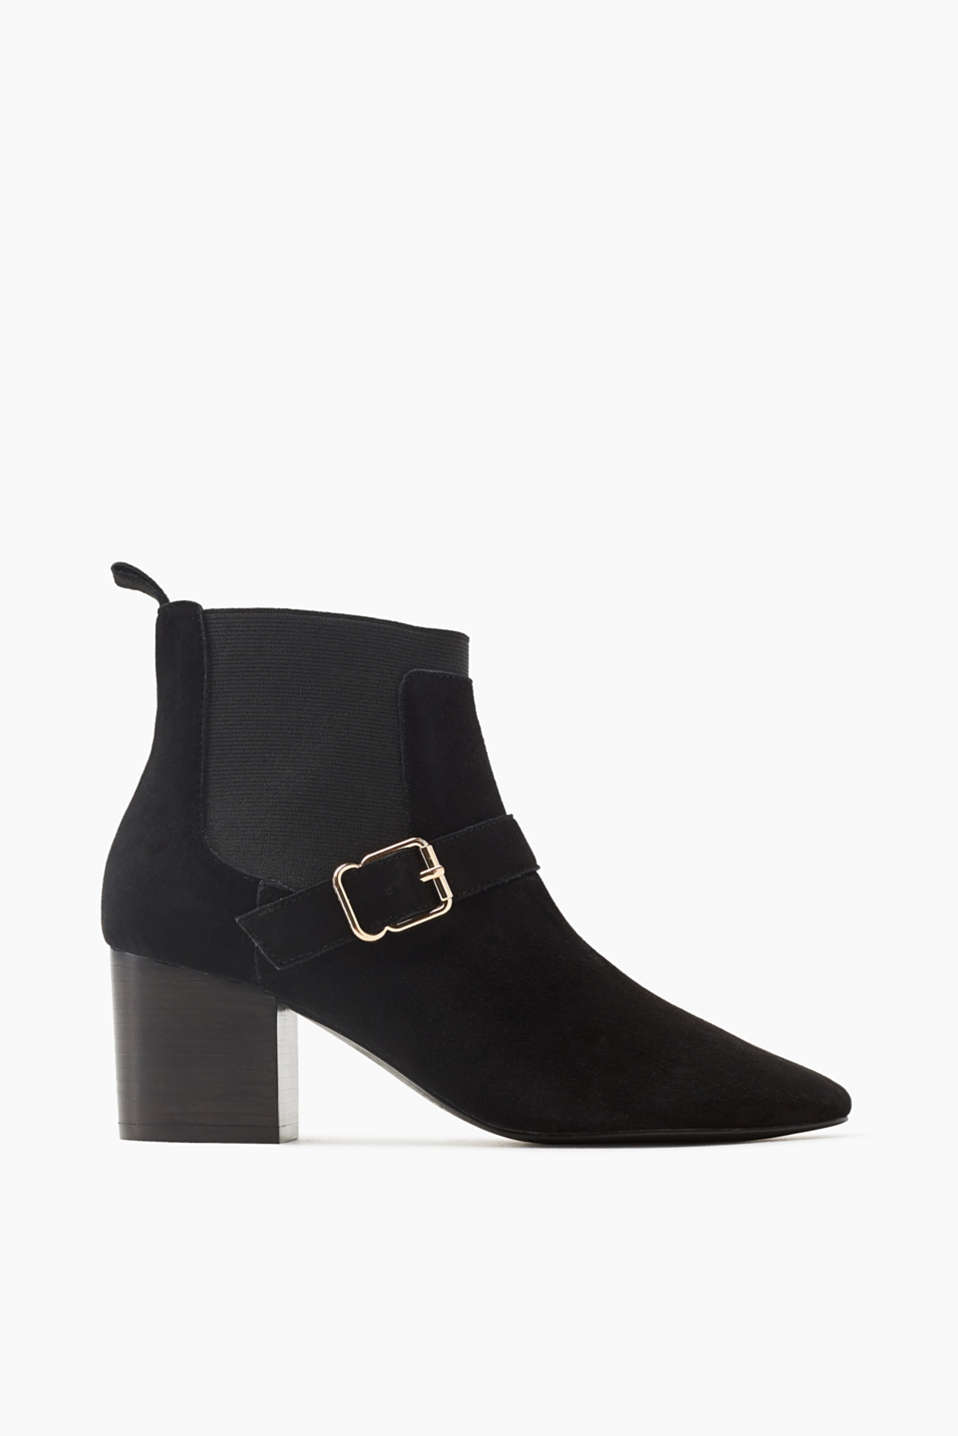 Your everyday boot! A wide block heel makes these suede ankle boots an autumn favourite.